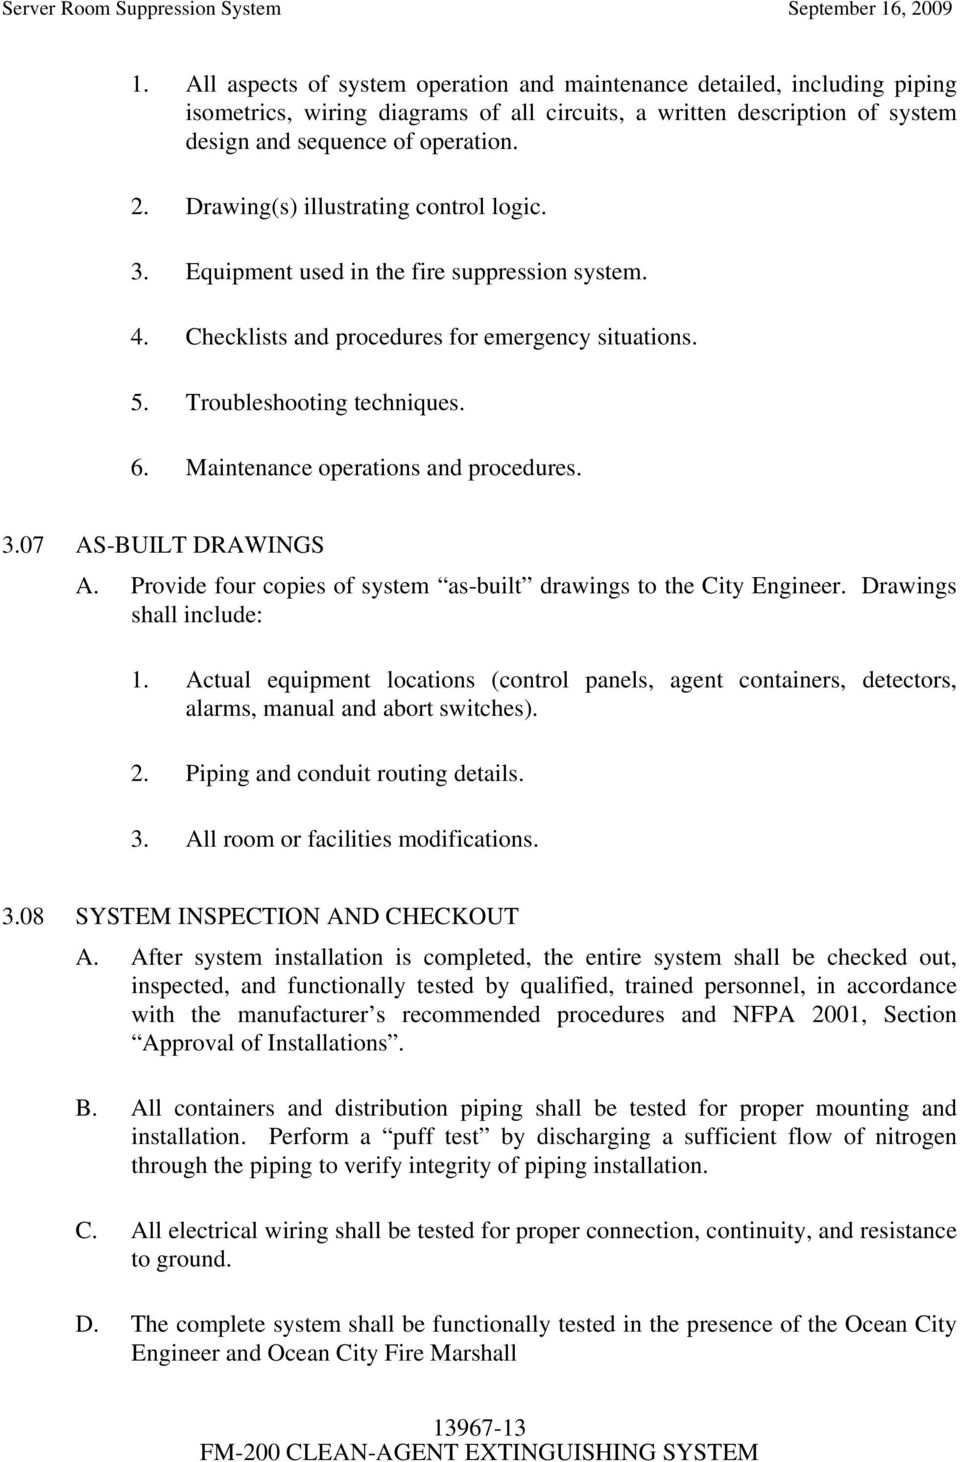 CONSTRUCTION STANDARD SPECIFICATION SECTION FM-200 CLEAN-AGENT ... on pinout diagrams, smart car diagrams, battery diagrams, lighting diagrams, hvac diagrams, switch diagrams, honda motorcycle repair diagrams, transformer diagrams, series and parallel circuits diagrams, gmc fuse box diagrams, troubleshooting diagrams, motor diagrams, engine diagrams, electrical diagrams, led circuit diagrams, friendship bracelet diagrams, internet of things diagrams, snatch block diagrams, sincgars radio configurations diagrams, electronic circuit diagrams,